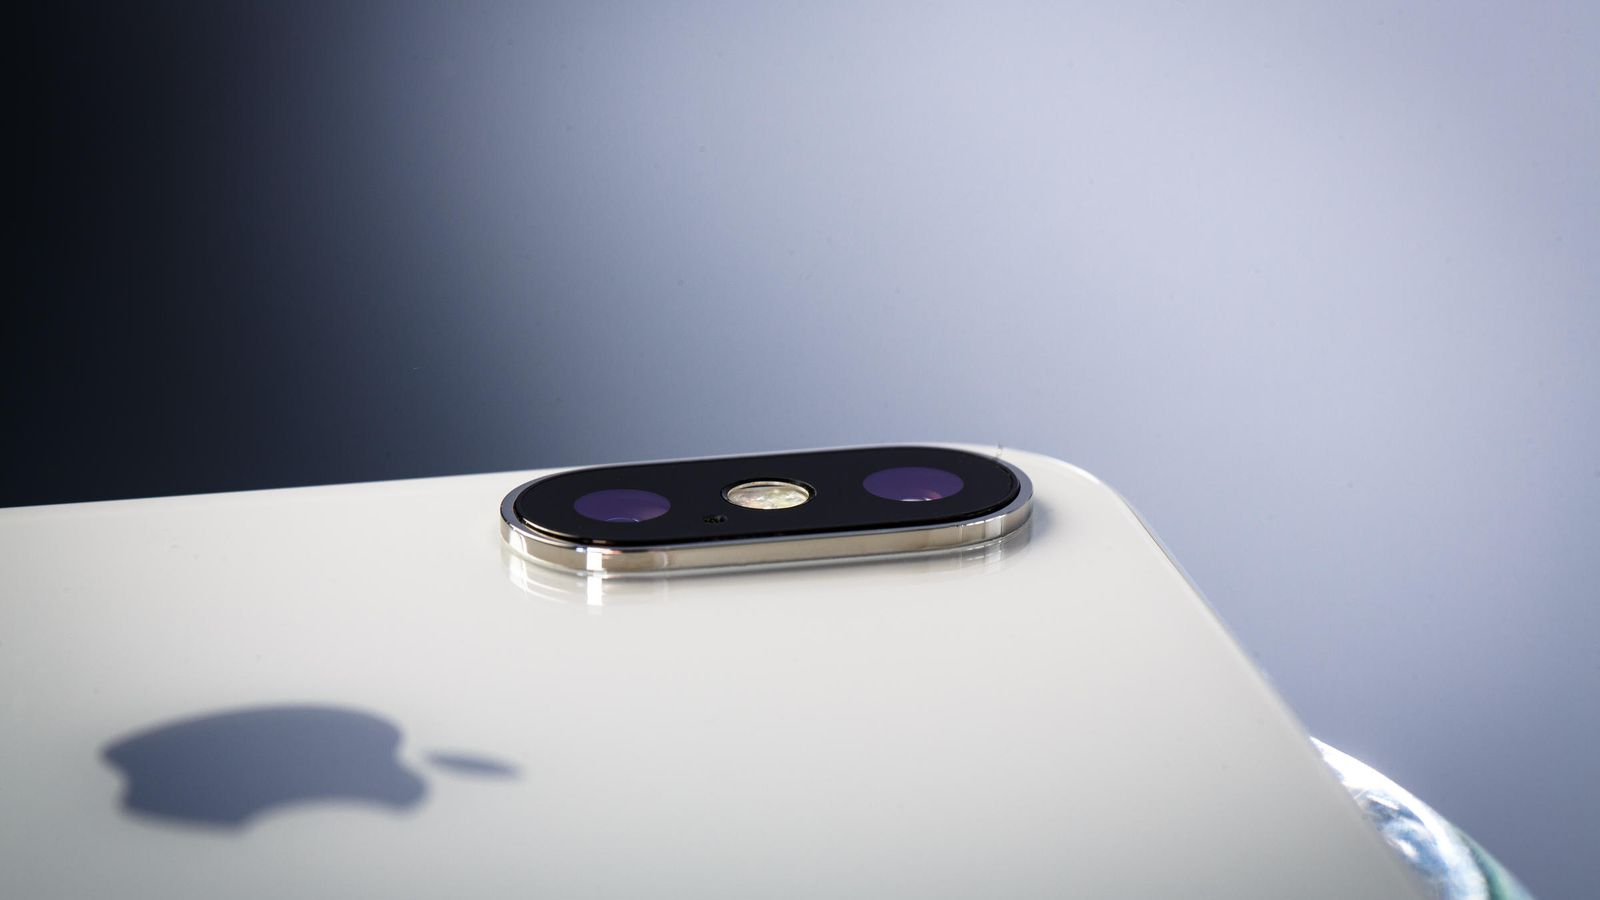 Apple 'to launch triple-camera iPhone next year'